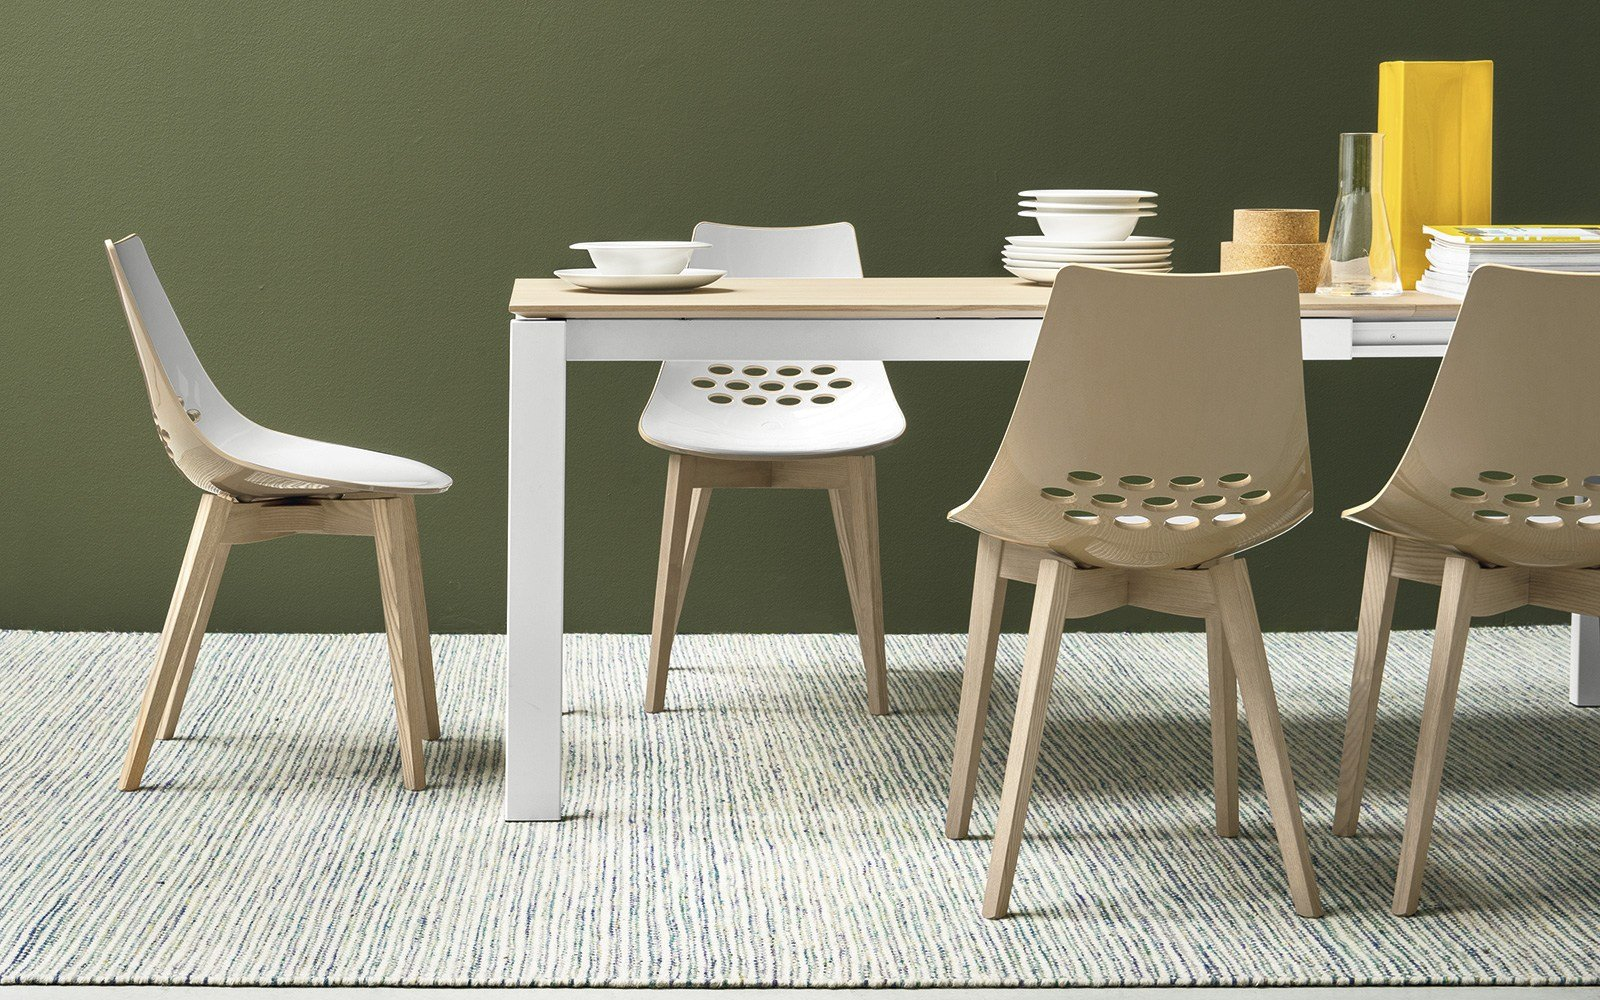 Jam w sedia by calligaris design archirivolto for Calligaris sedie